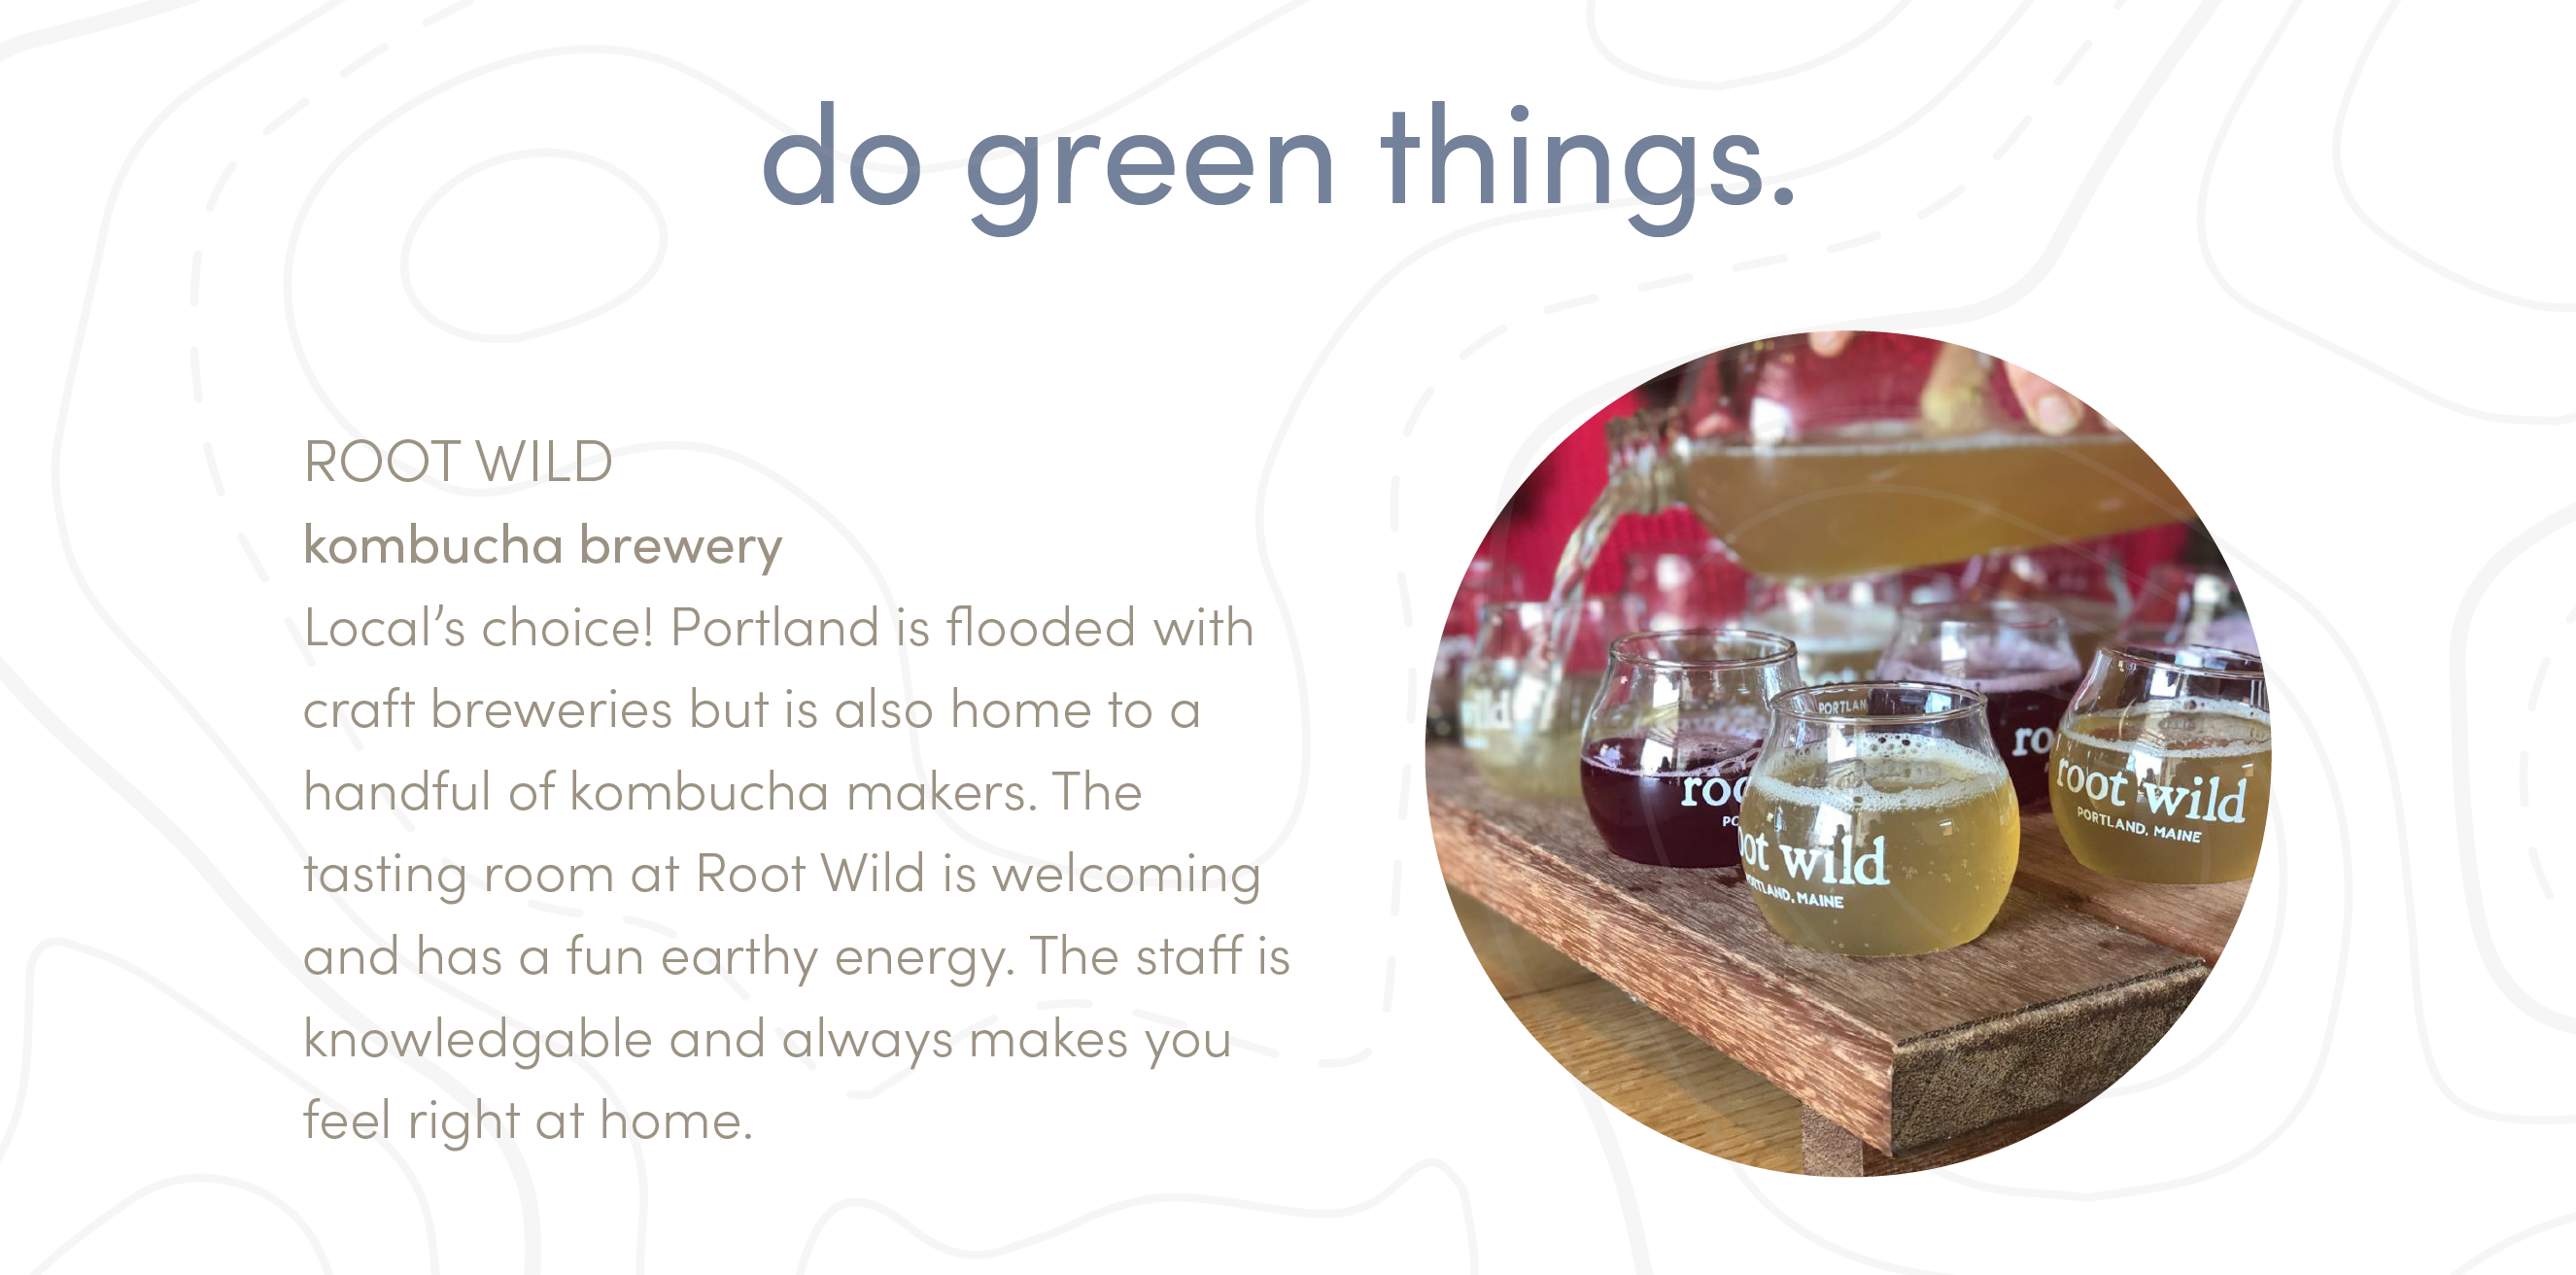 do green things.